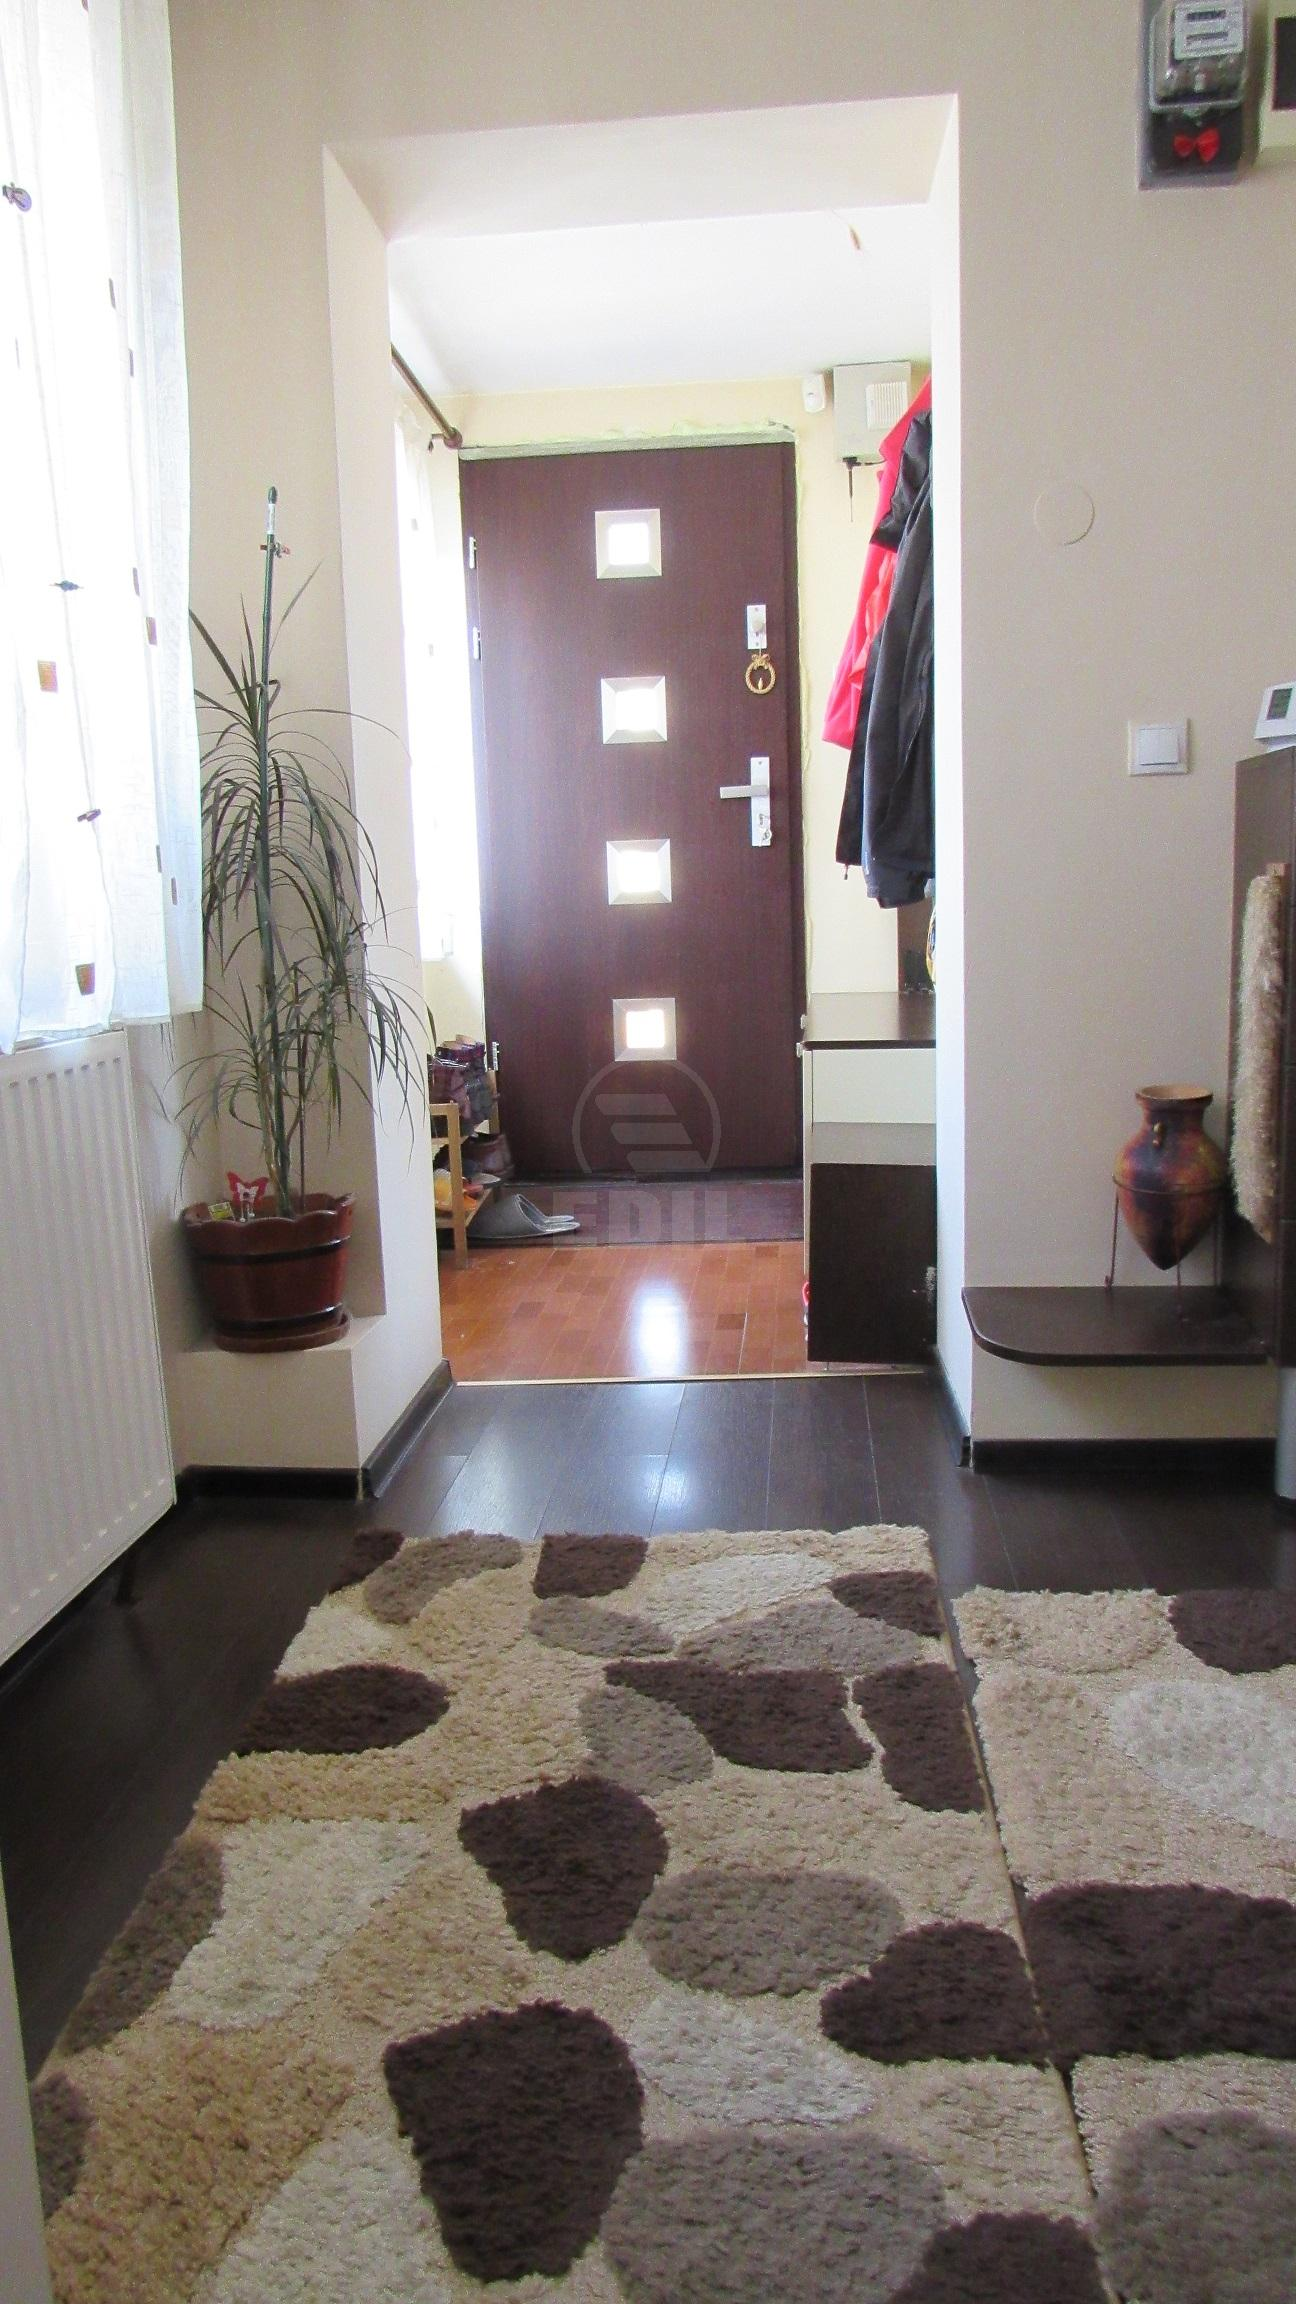 House for sale 2 rooms, CACJ282704-8